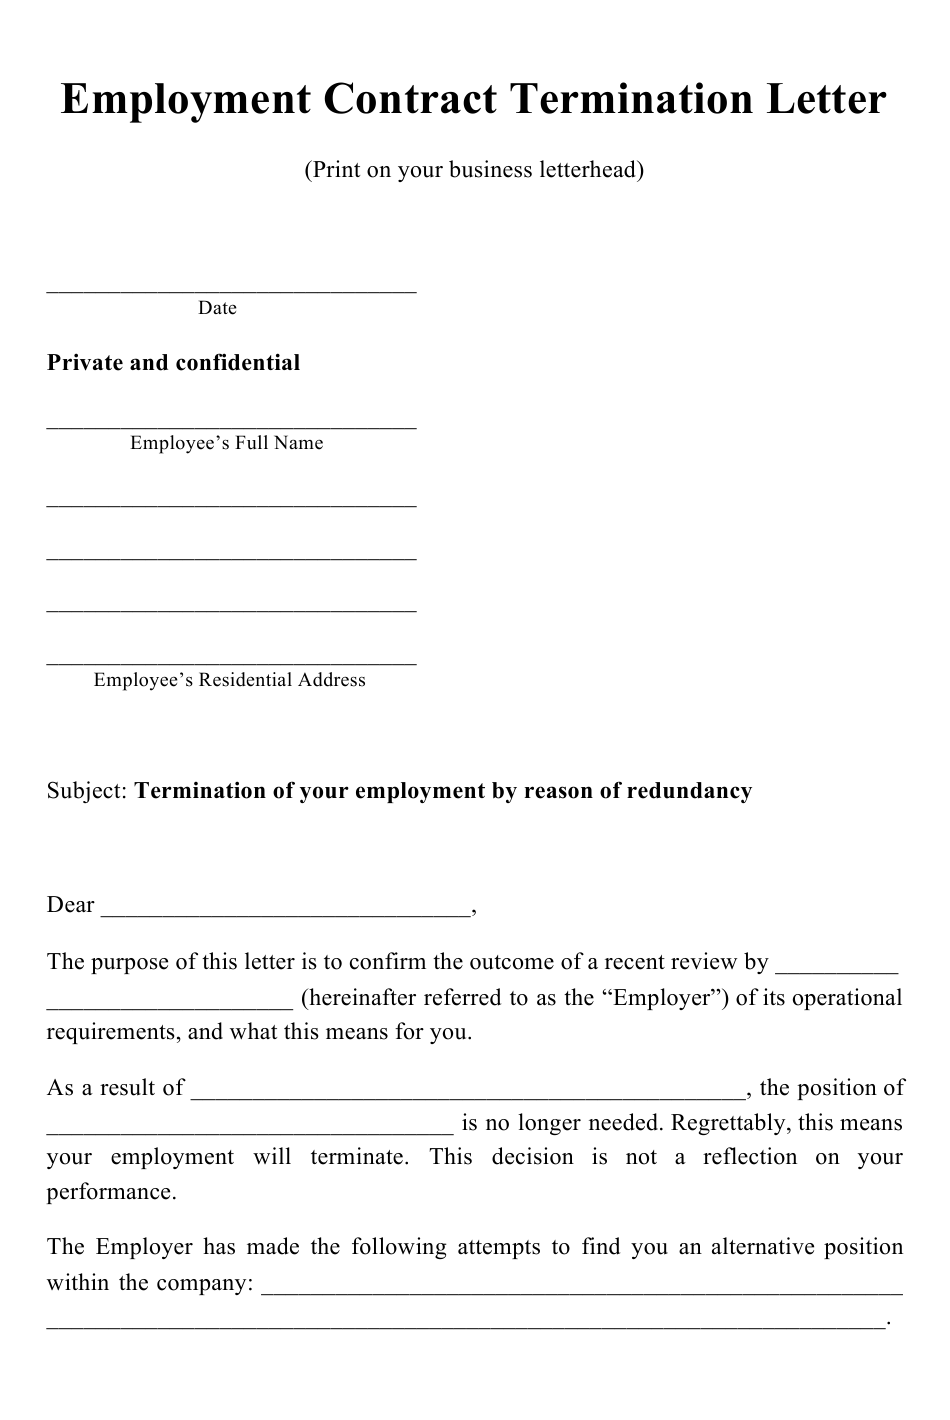 Employment Contract Termination Letter Template Download Printable Pdf Templateroller